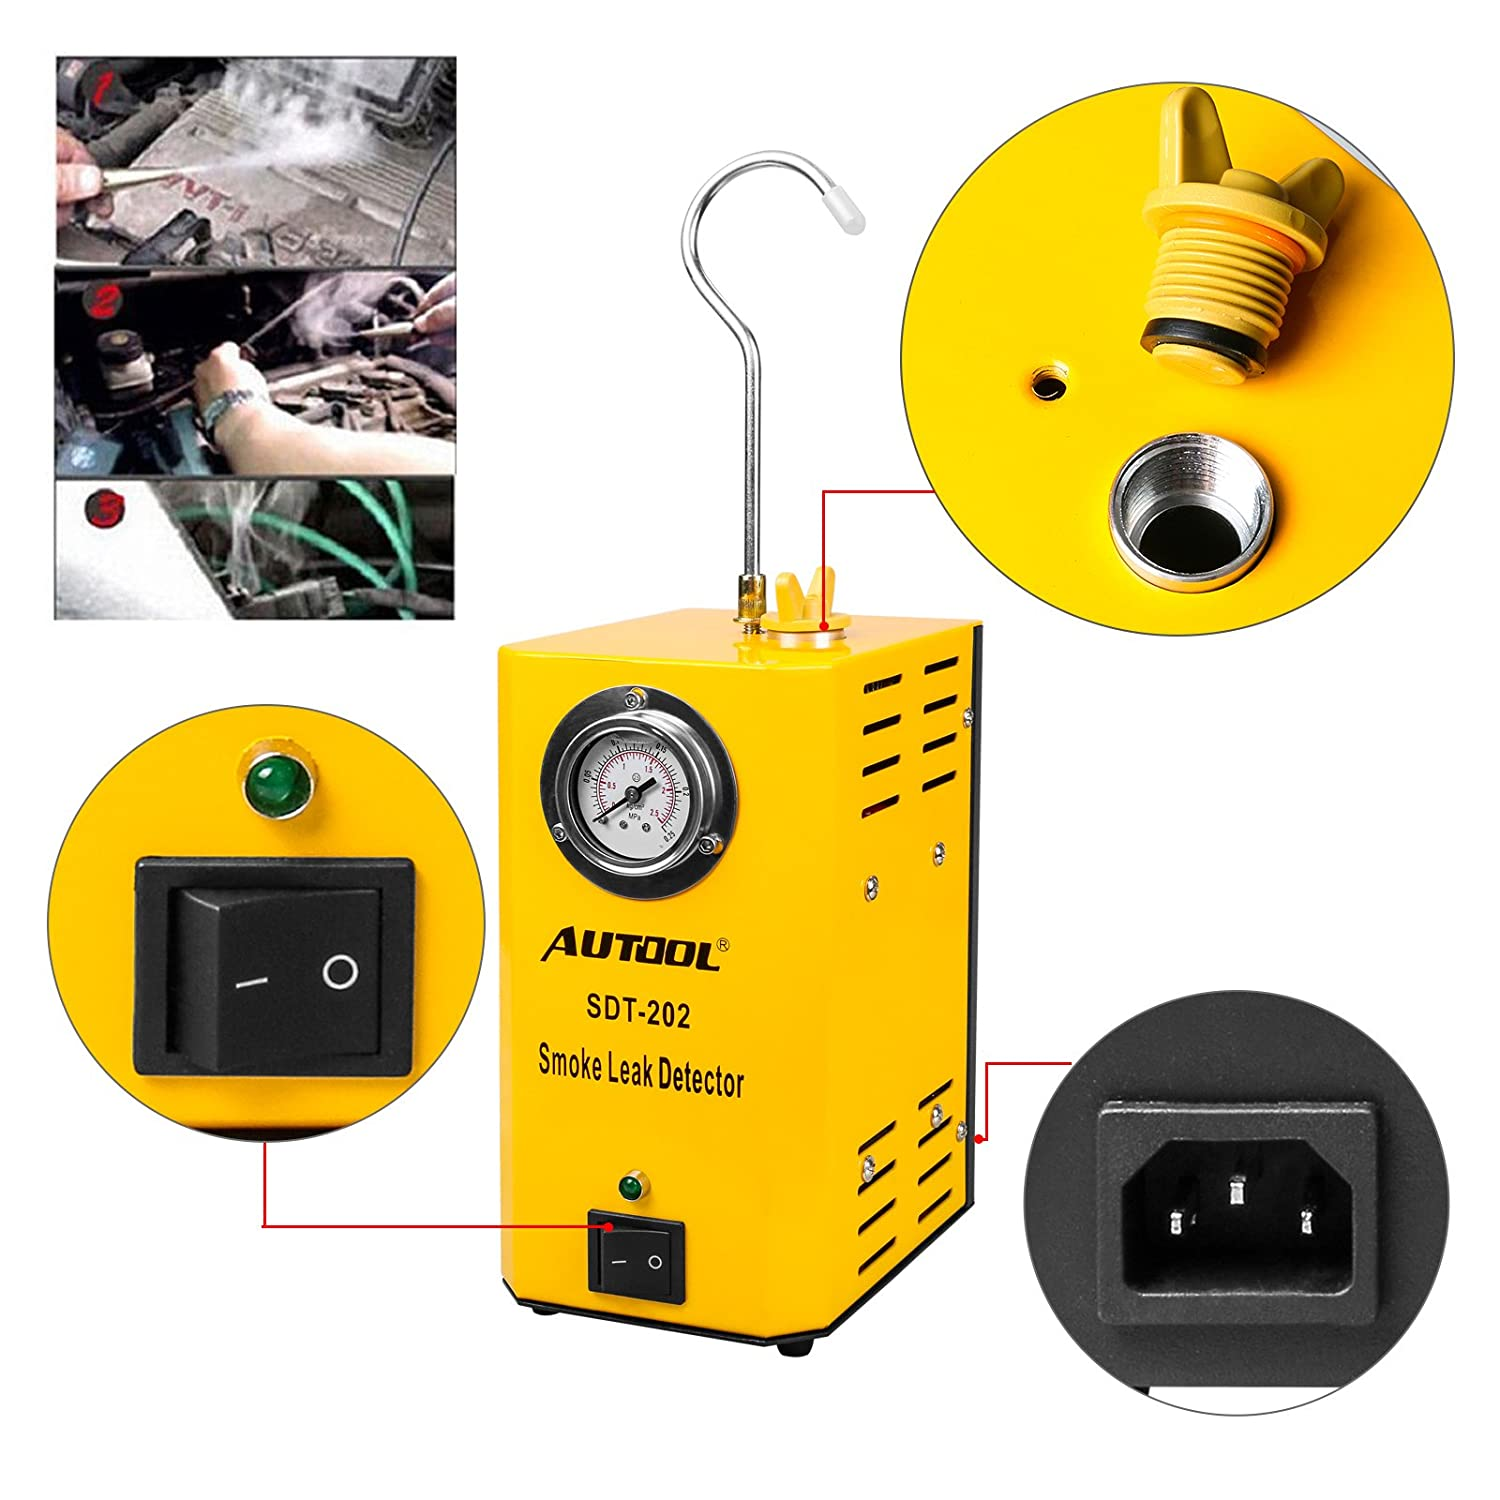 AUTOOL 12V Automotive Fuel Leak Detectors SDT-202 Cars Leak Locator Tester Car Fuel Leak Detectors SDT202 Car PIPE Leakage Tester Support EVAP For All Vehicles